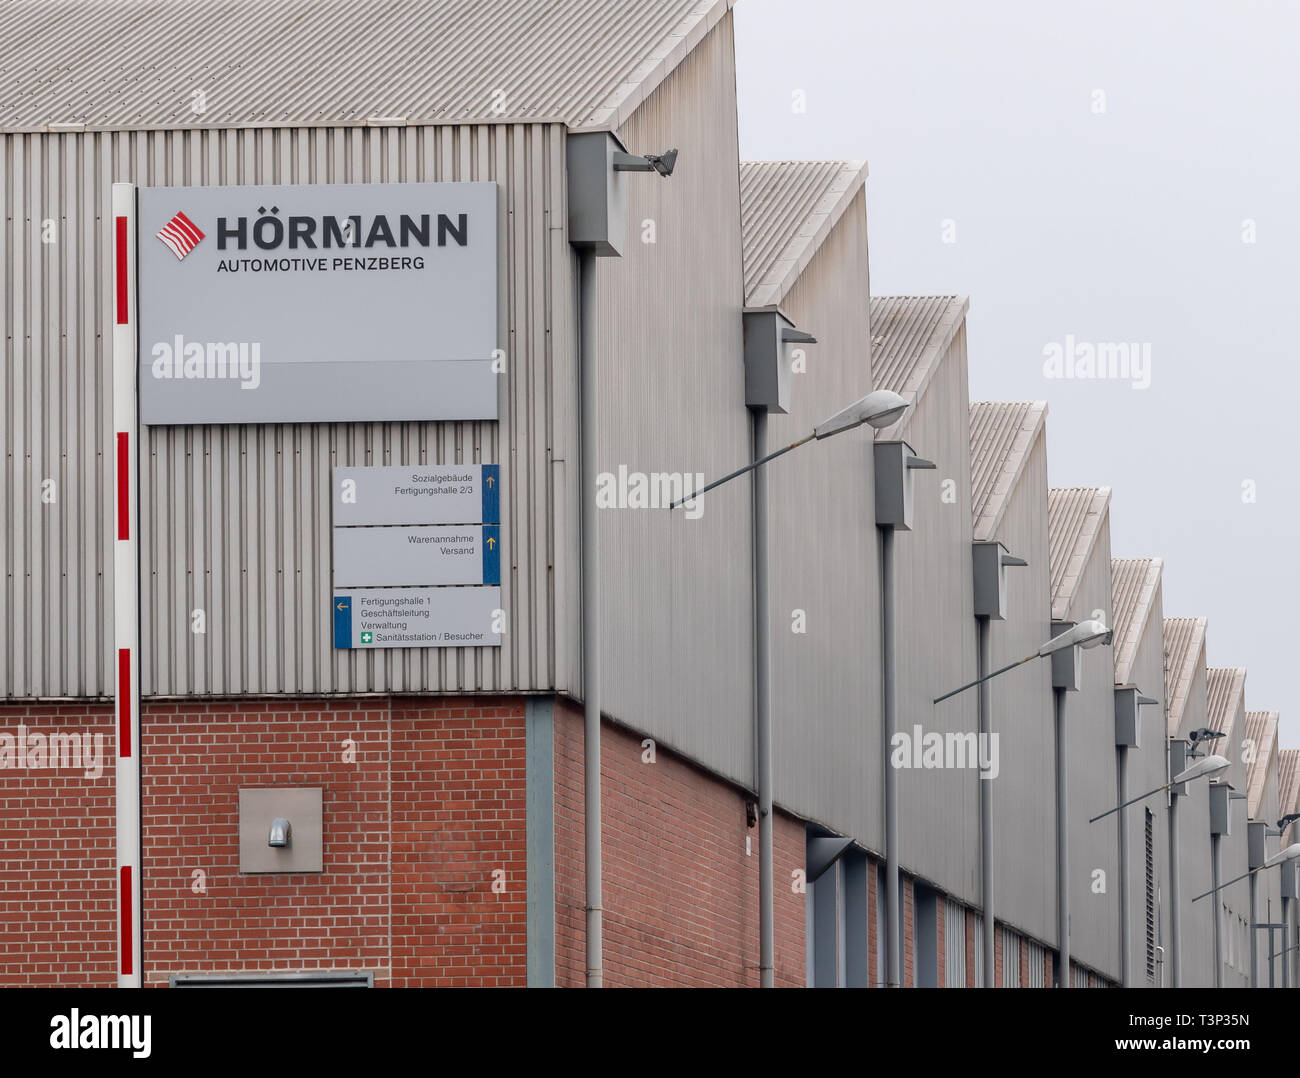 Penzberg, Germany. 11th Apr, 2019. A sign with the inscription 'Hörmann - Automotive Penzberg' hangs on the facade of the factory buildings. The Penzberg plant of Automotive Hörmann, the largest division of Hörmann Industries, is to be closed by June 30, 2020. Credit: Peter Kneffel/dpa/Alamy Live News - Stock Image